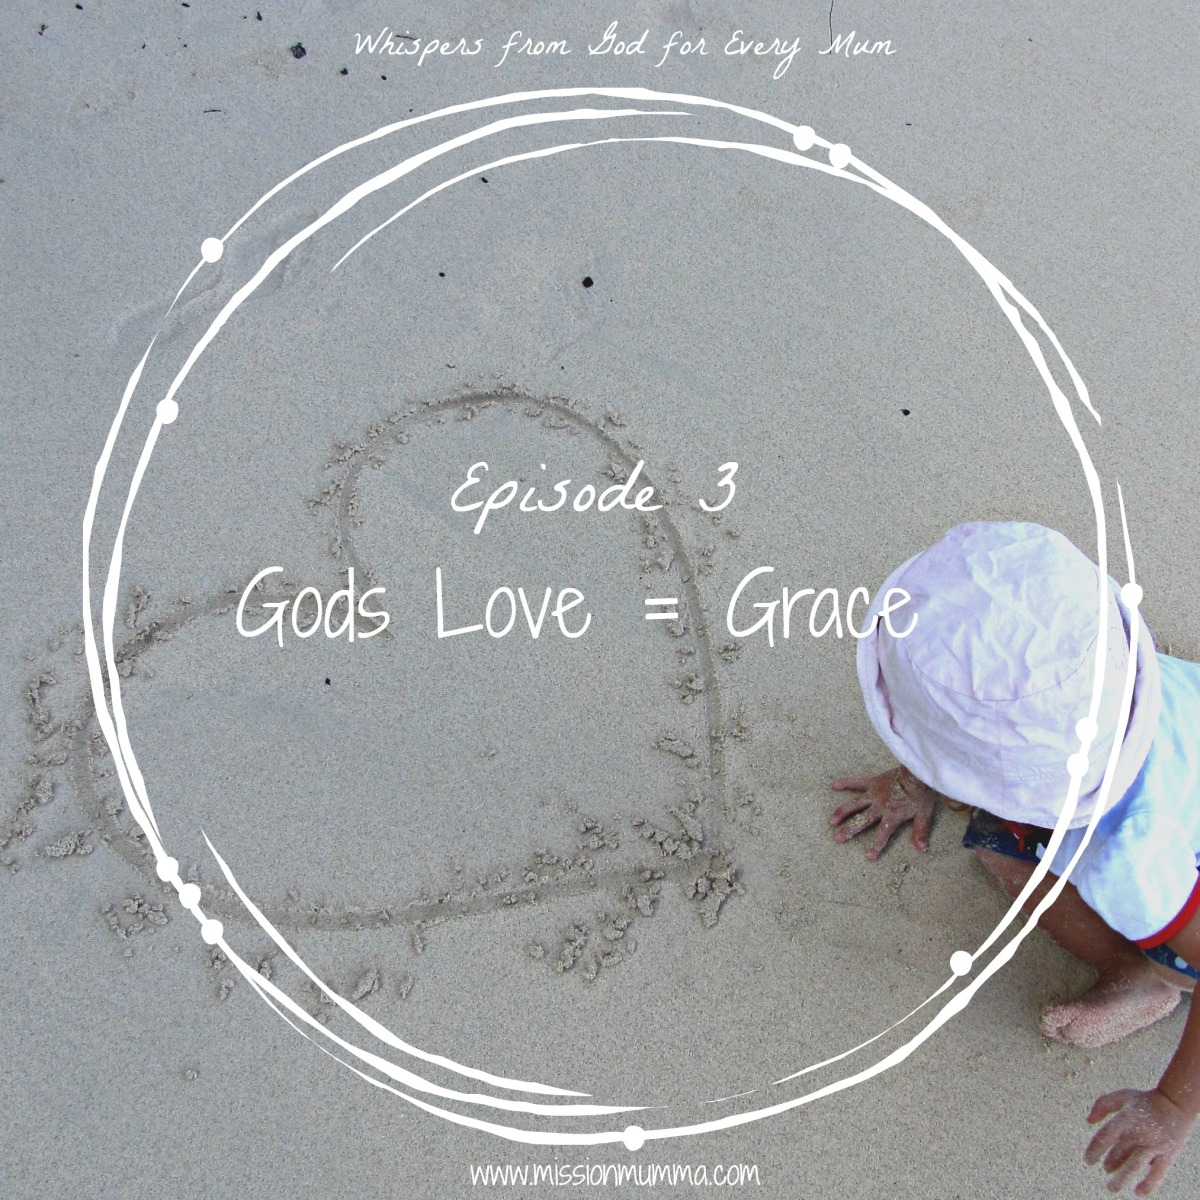 Episode 3 - Gods Love = Grace